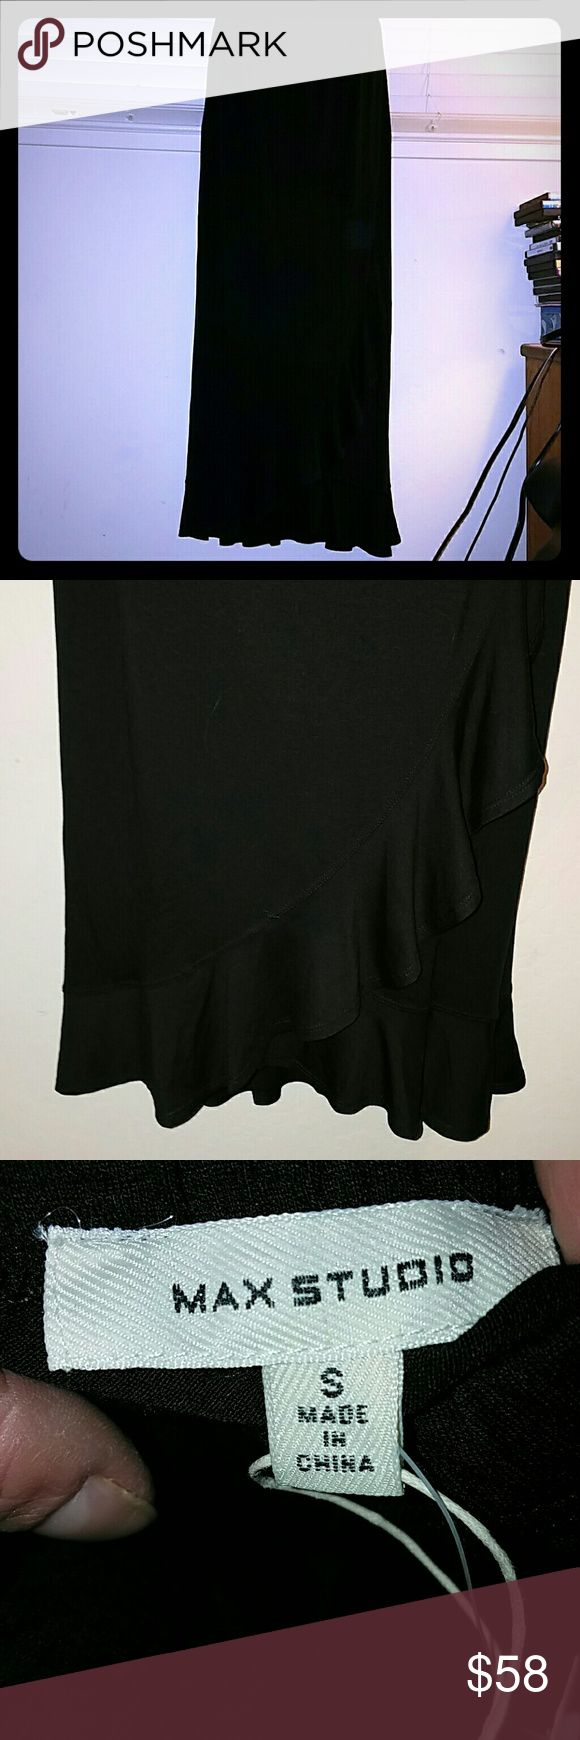 New! NWT! *Black Wrap Maxi Skirt* Black Maxi Skirt that partially wraps around leaving a beautiful flowing asymmetrical line at the bottom (pic #2). Has a stretchy, comfortable waist band. Brand NWT! Max Studio Skirts Maxi